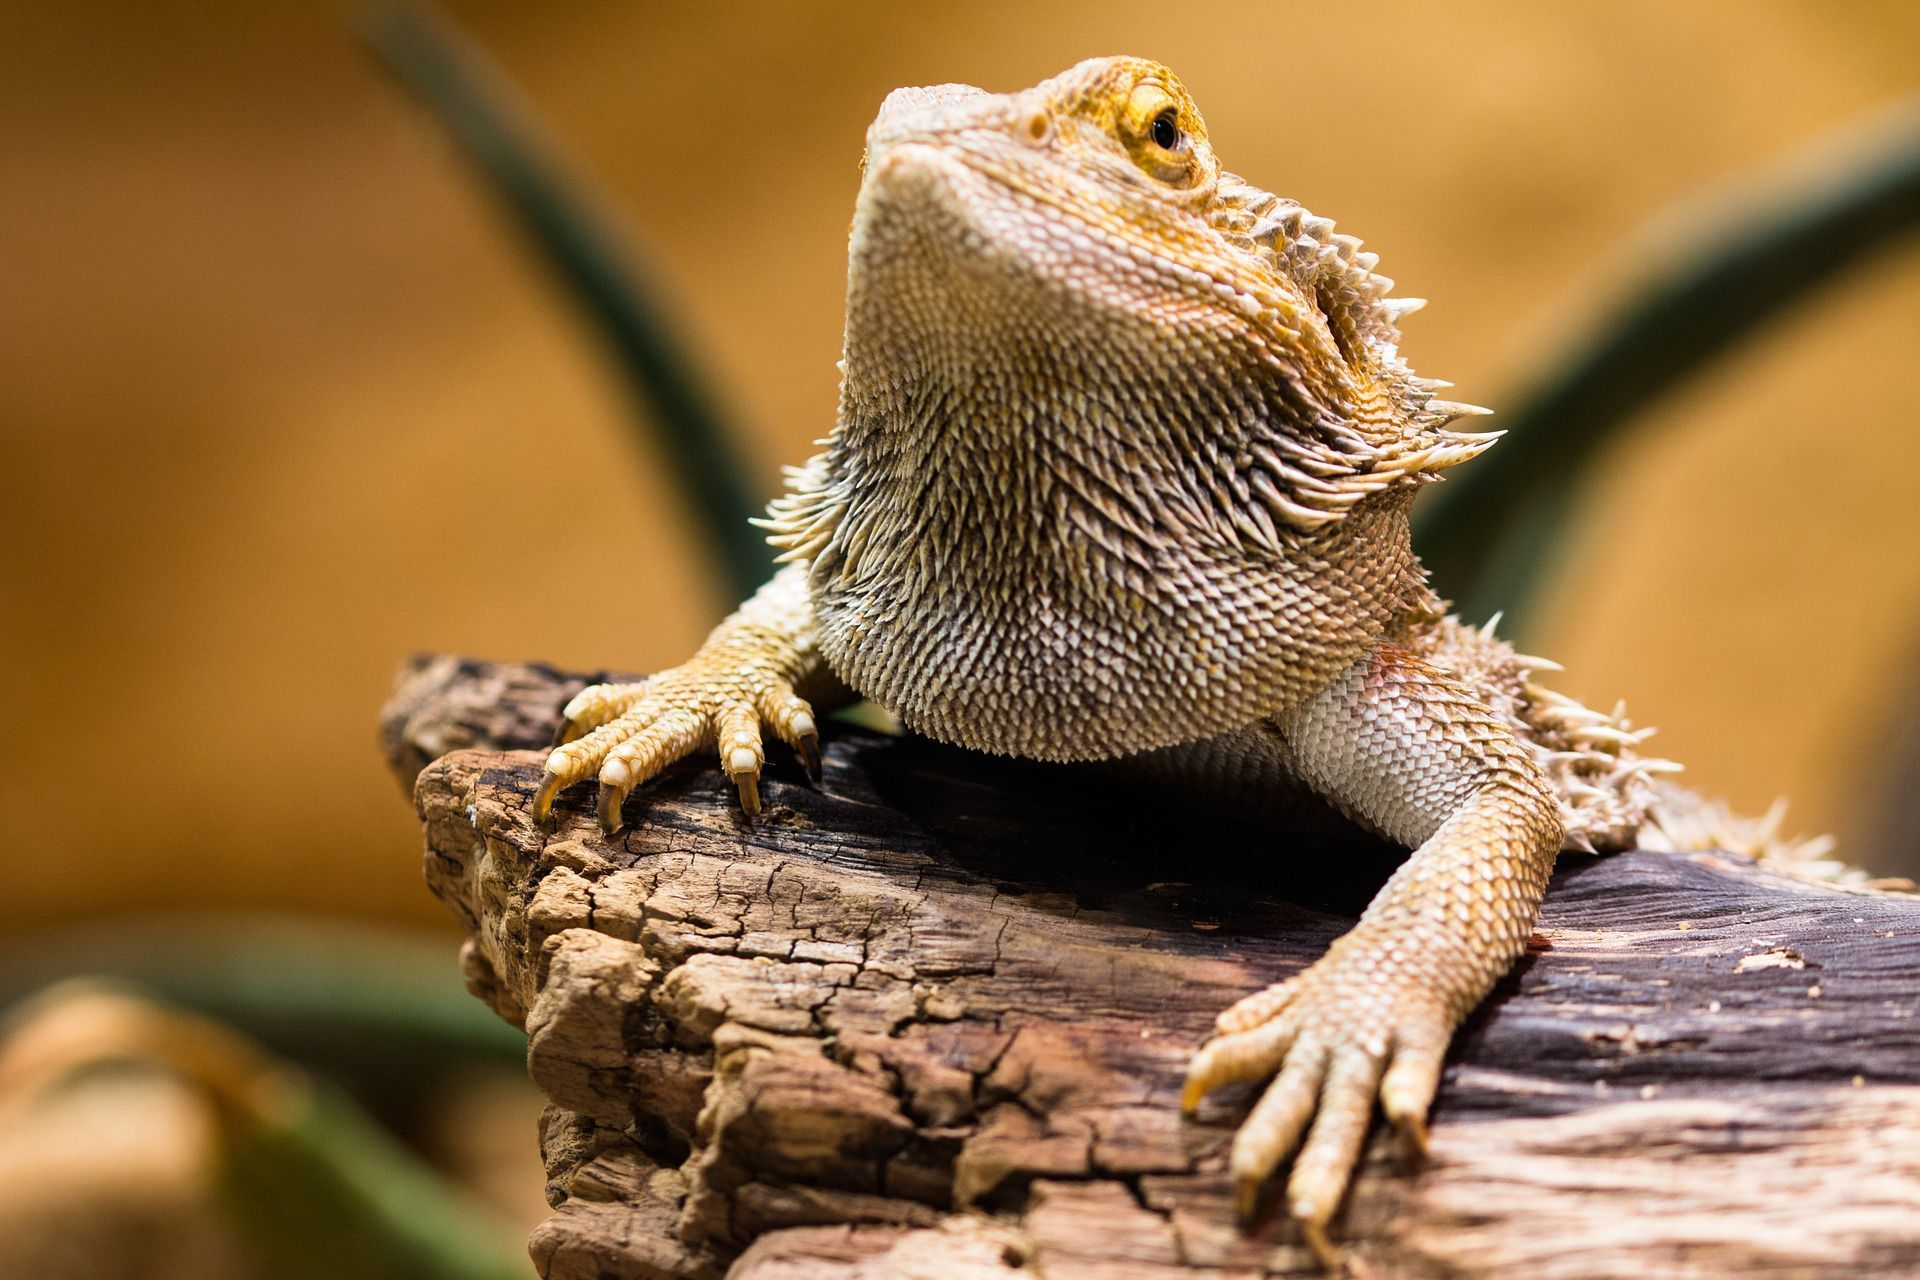 Find Out About Reptile Pet Sitters Reptile Boarding Facilities What To Prepare For Your Reptile B Bearded Dragon Care Bearded Dragon Cute Baby Bearded Dragon